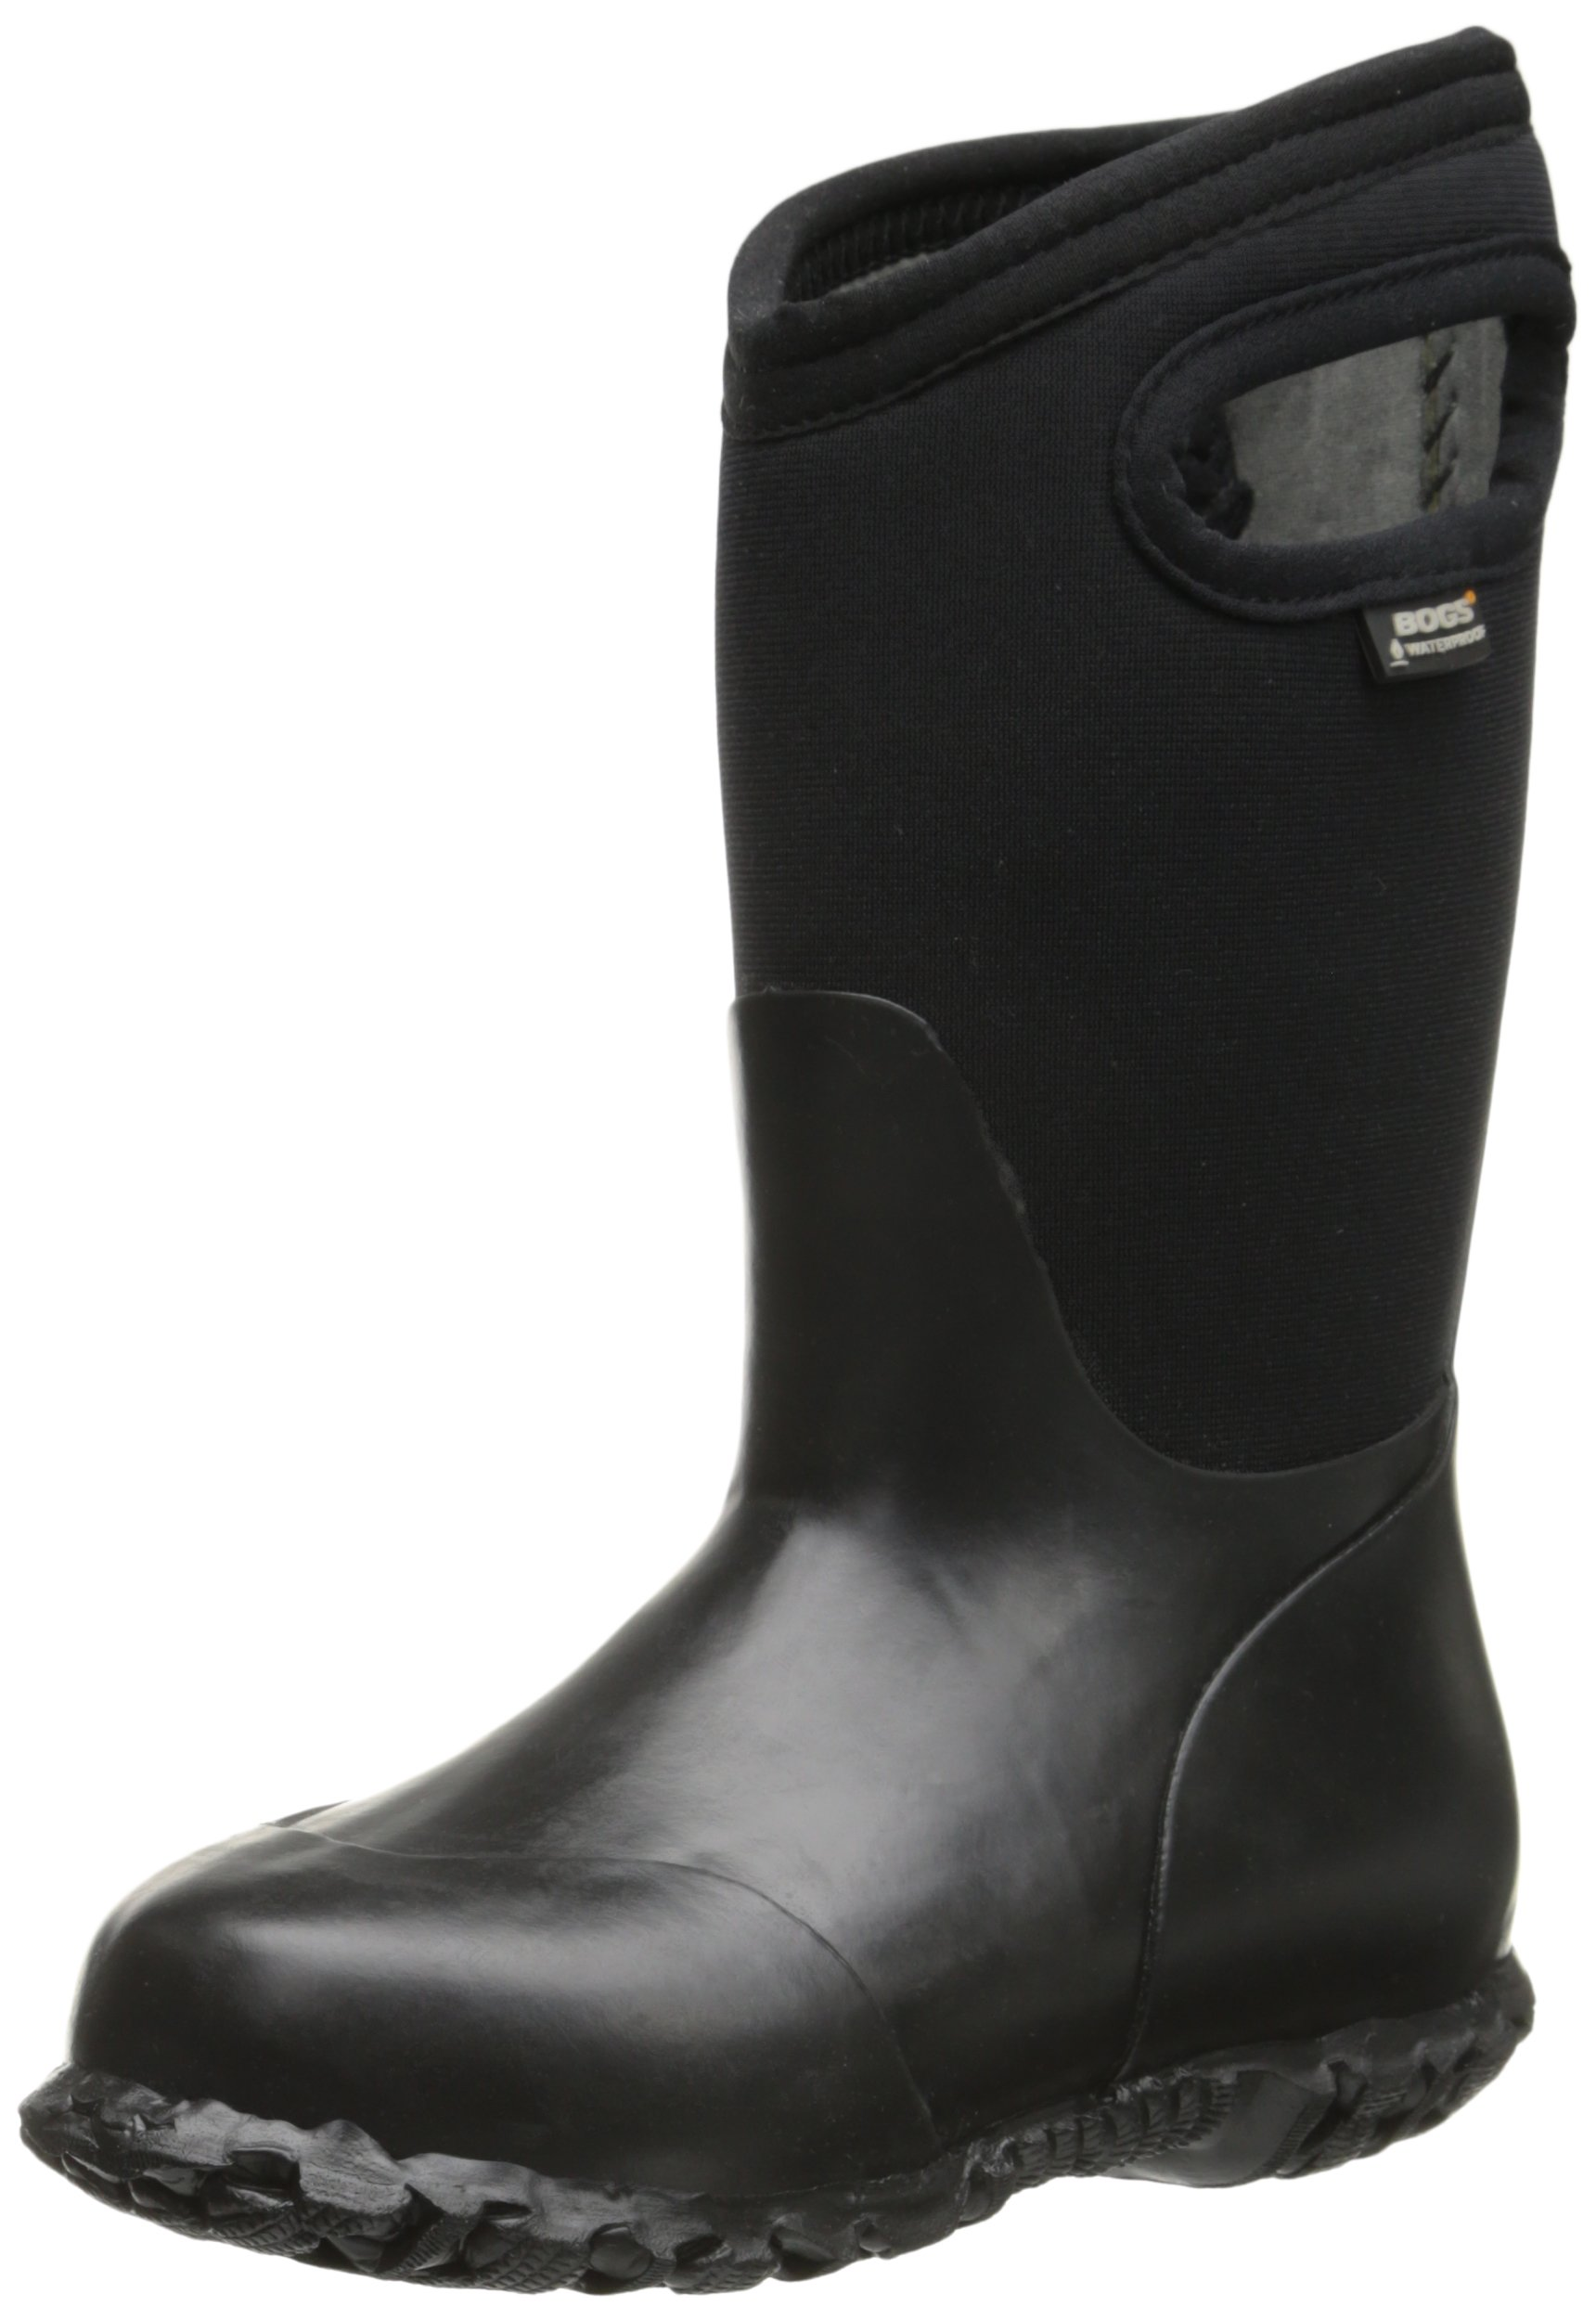 Bogs Durham Kids/Toddler Waterproof Snow Boot for Boys and Girls, All Black, 1 M US Little Kid